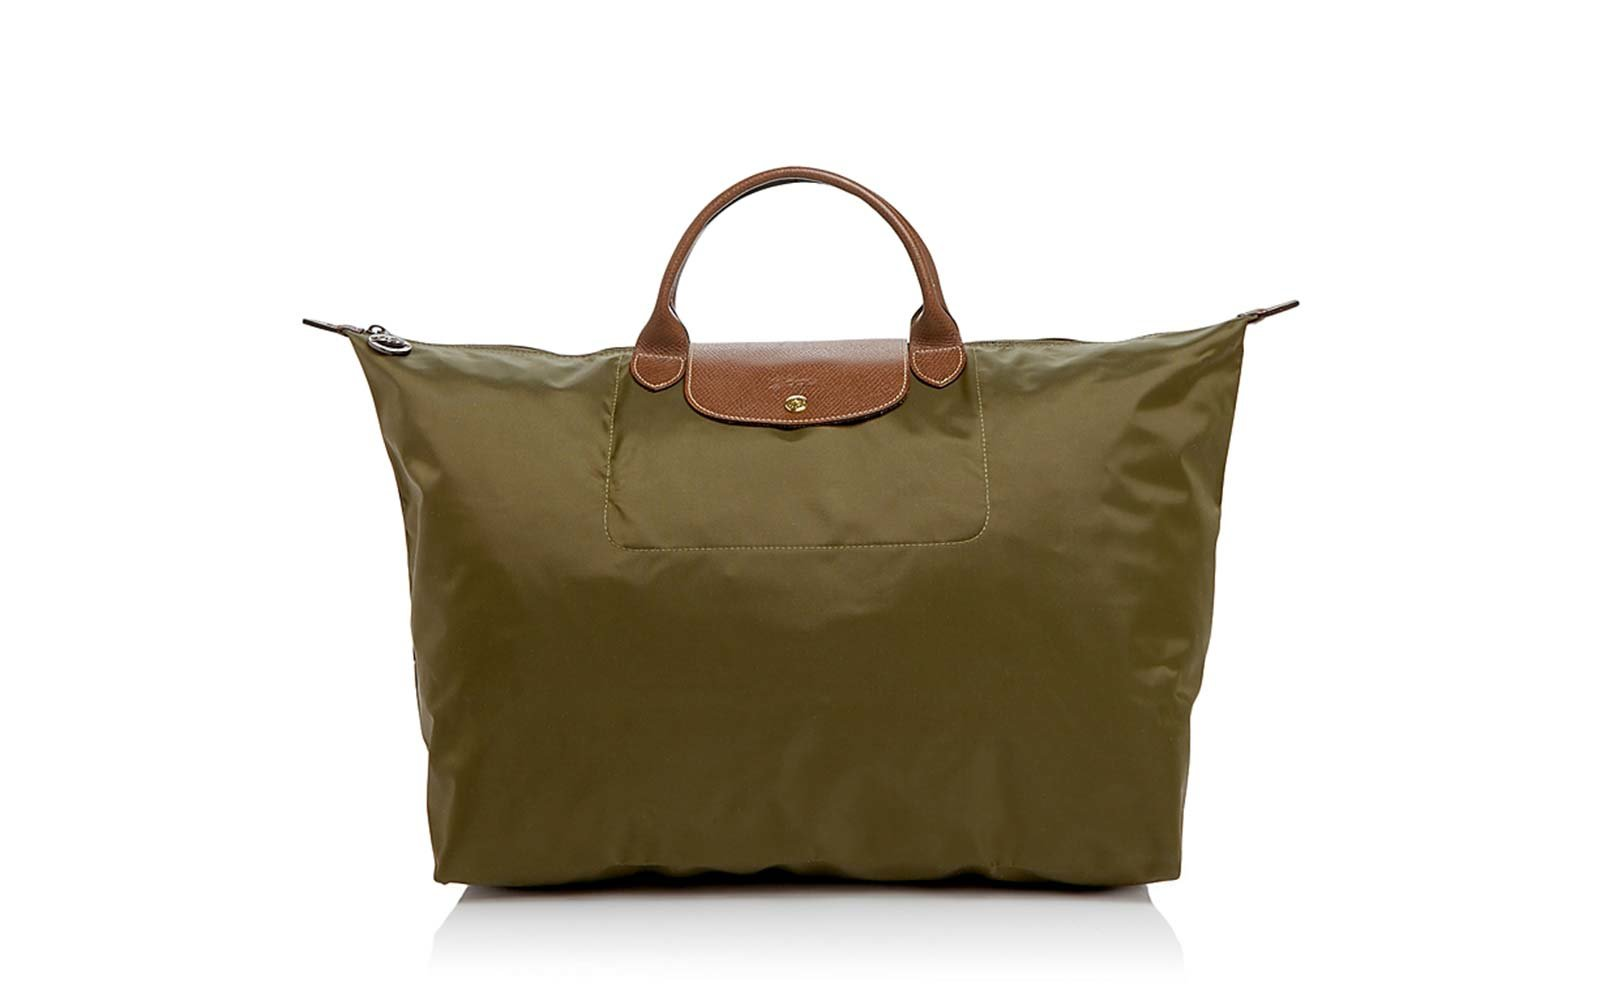 Travel Packing Essentials Longchamp luggage bag